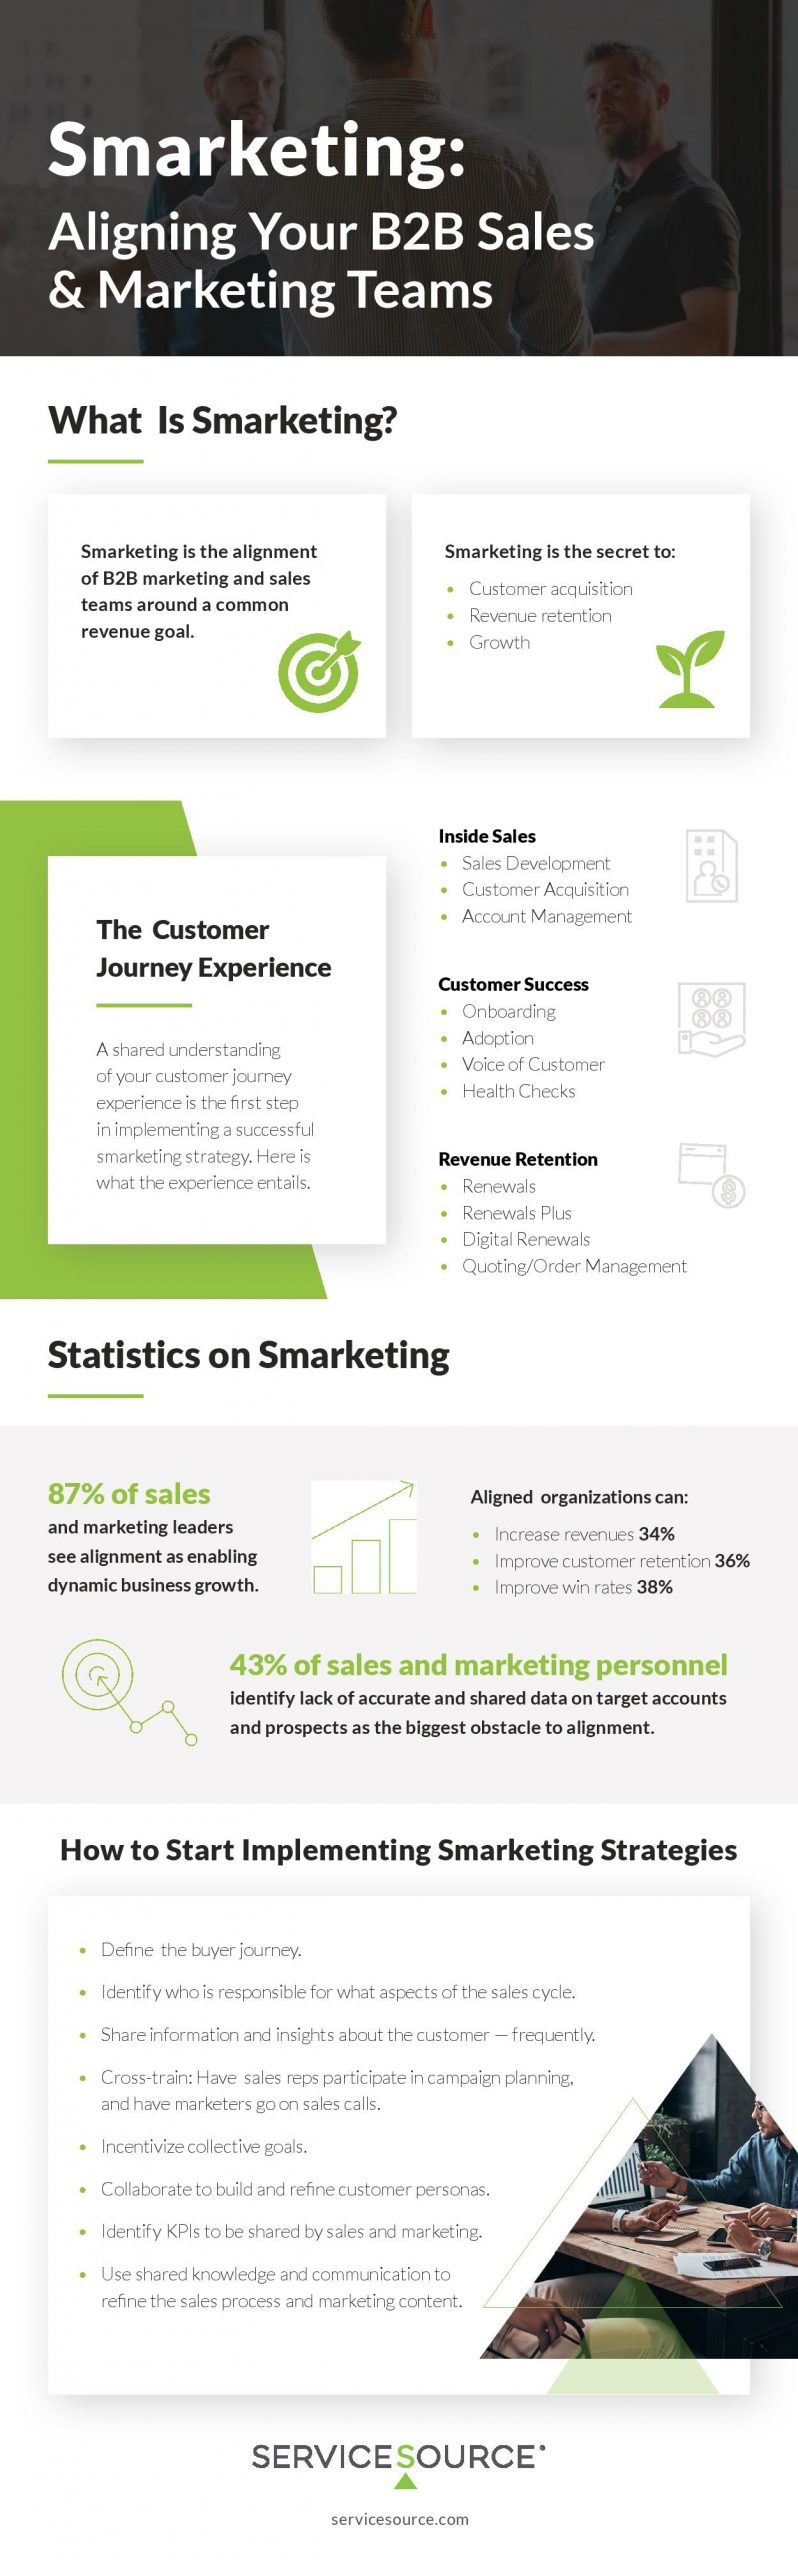 servicesource smarketing aligning sales and marketing teams